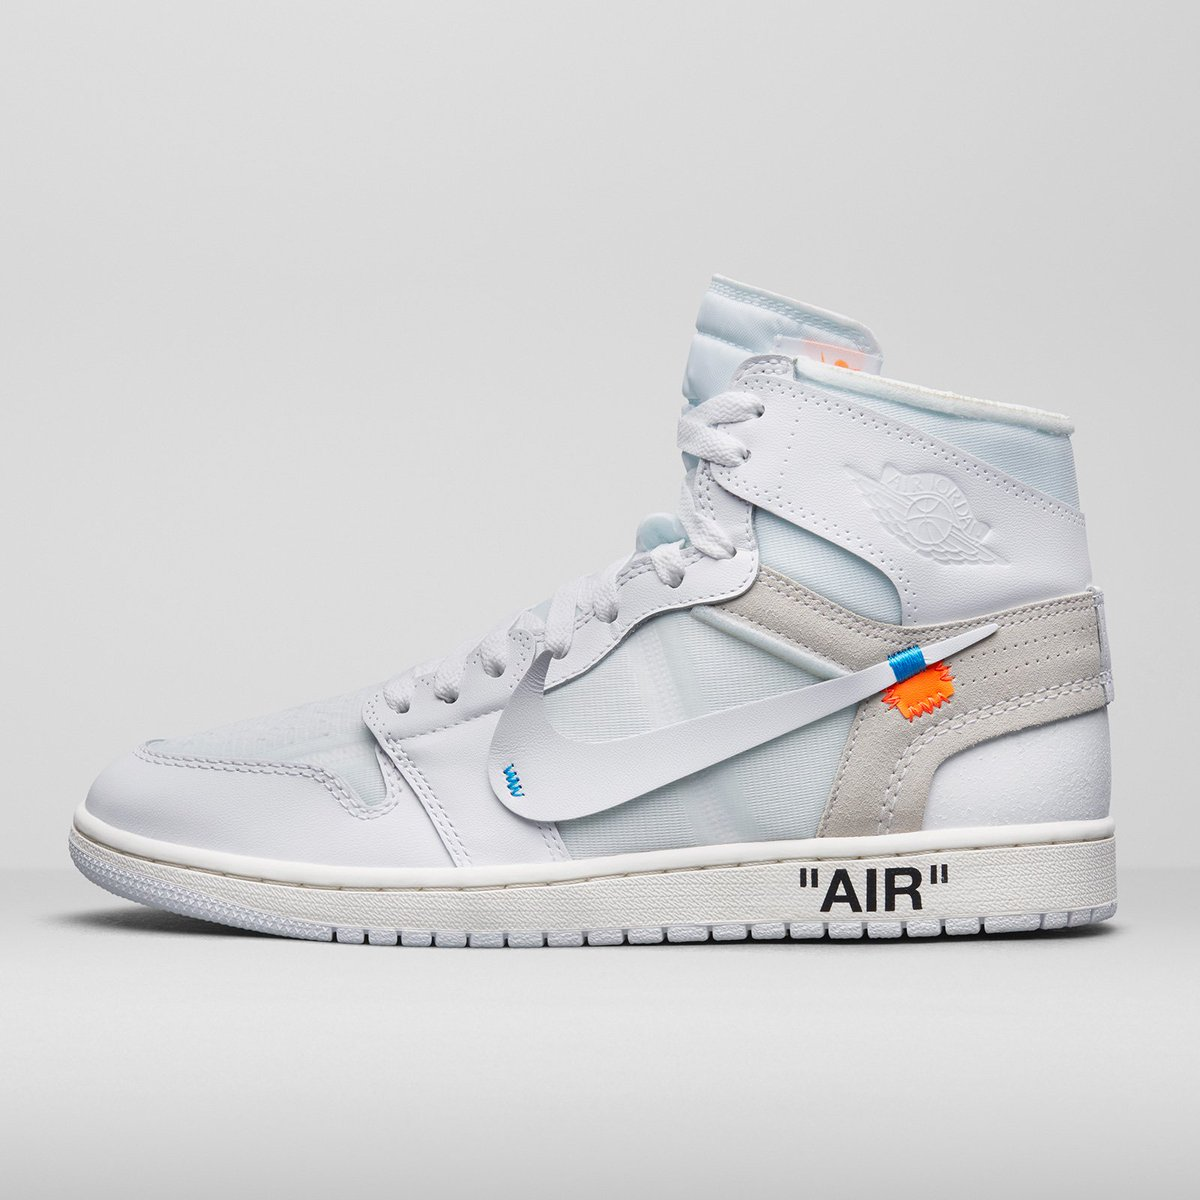 525ed1719de1db Off-White x Air Jordan 1 now releasing March 3rd in Europe  https   j23app.com s 1805  Men s AQ0818-100 £160 Grade School AQ8296-100  £130pic.twitter.com  ...